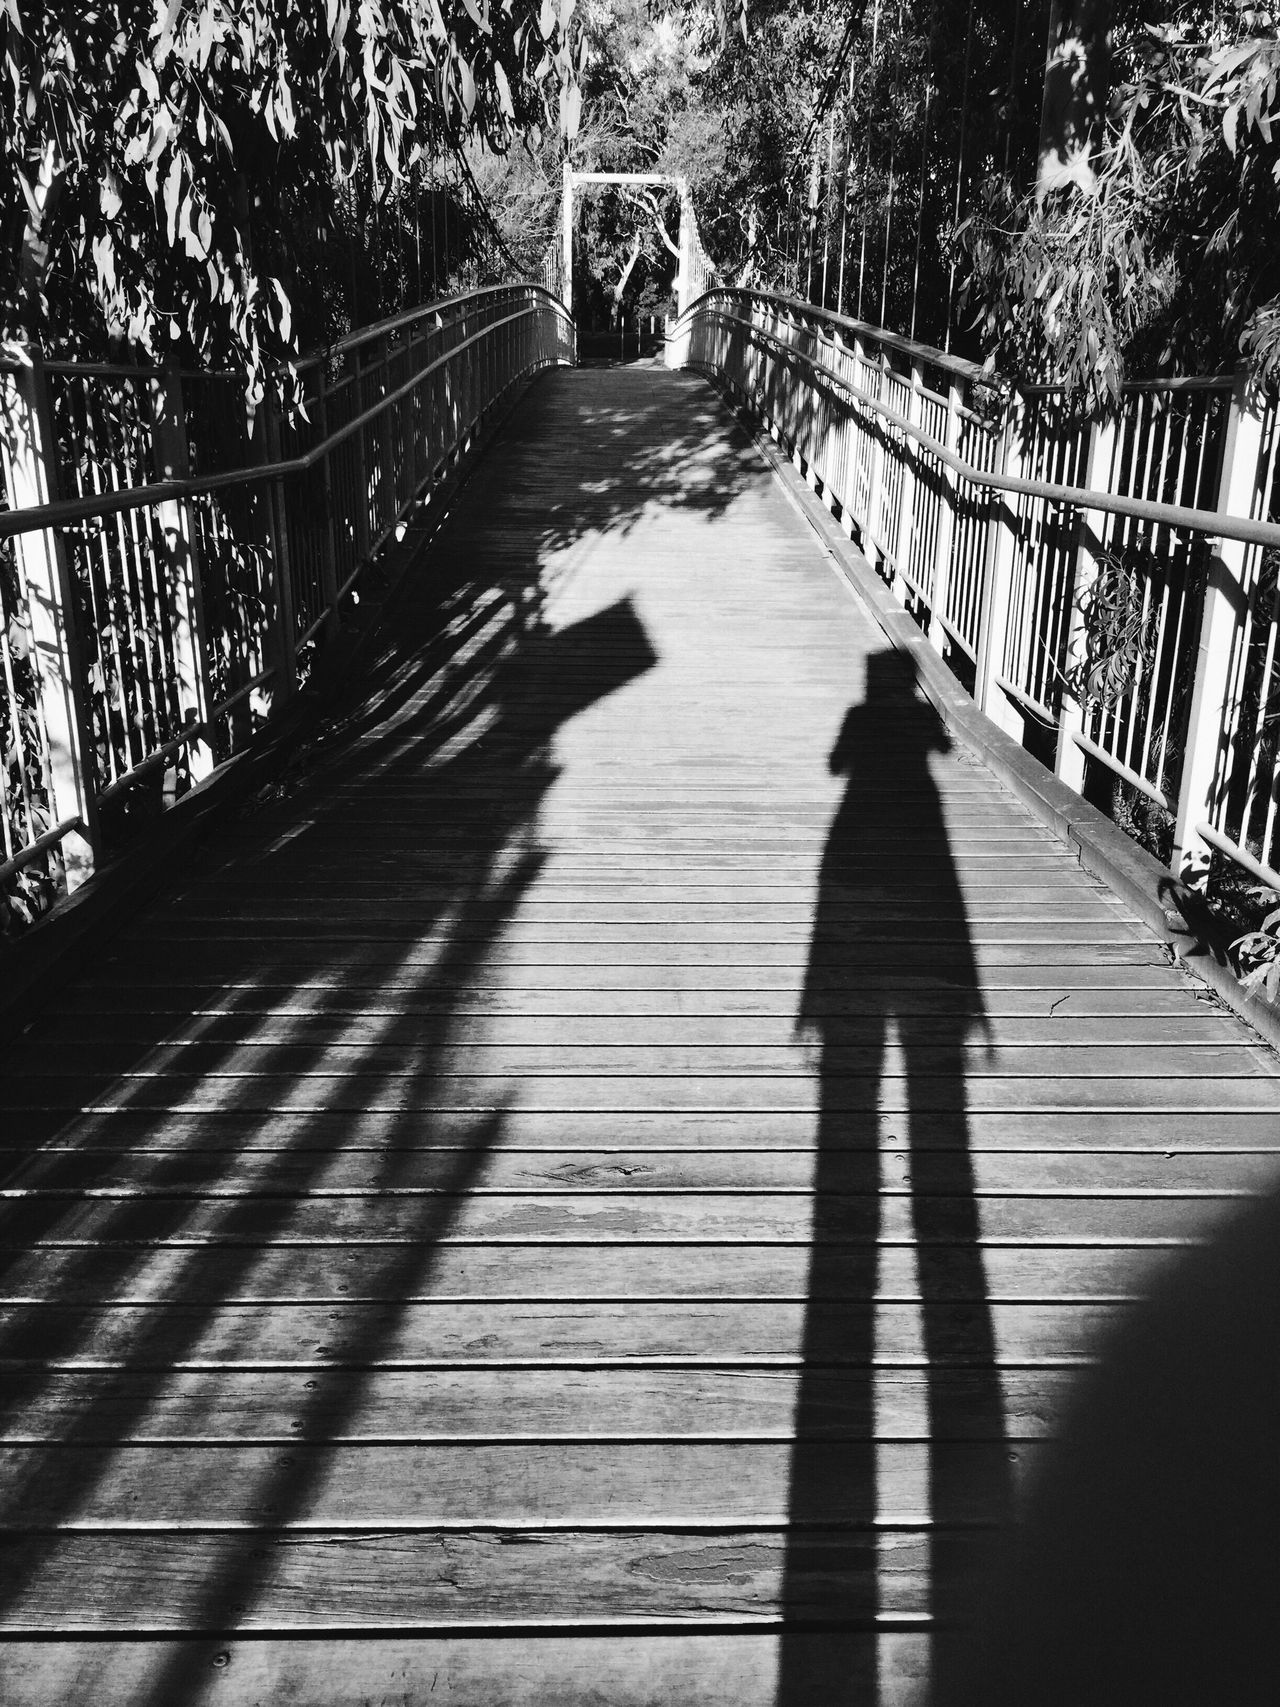 That's Me My Shadow Me And My Shadow No People Black And White Black And White Photography Taking Photos On A Bridge